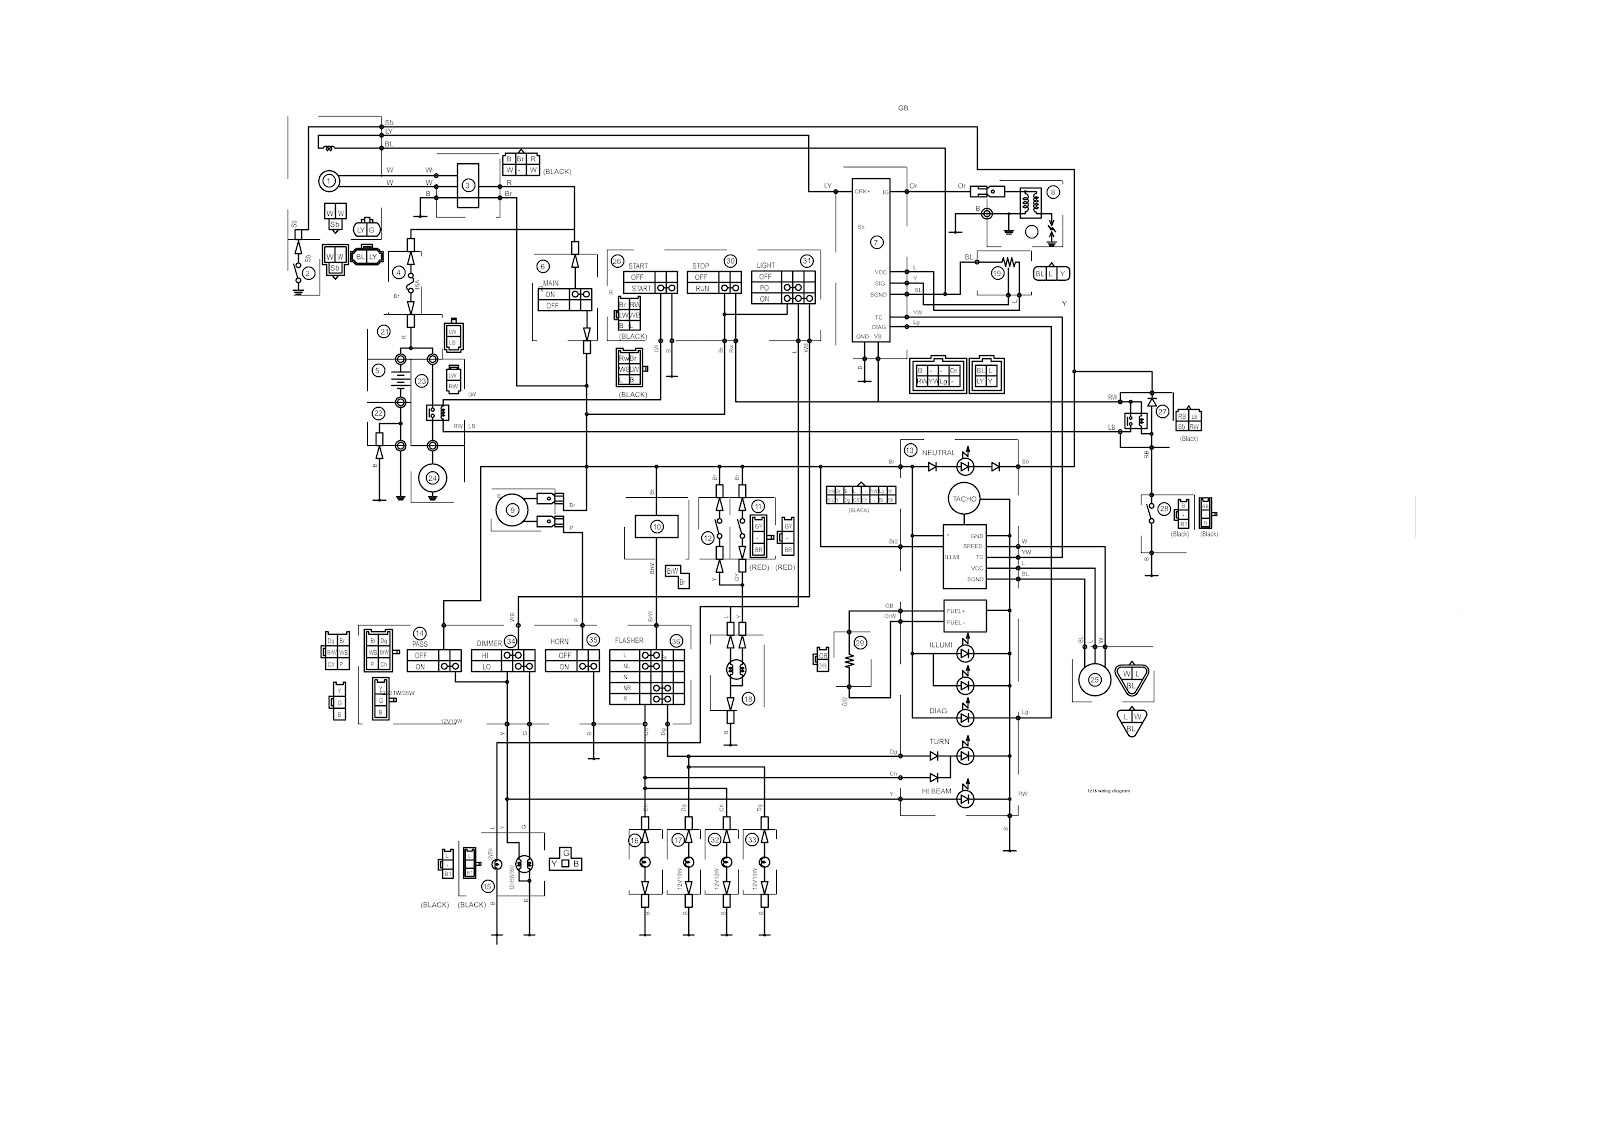 Mag O Wiring Diagram Library 220v Well Pump Free Download Diagrams Pictures